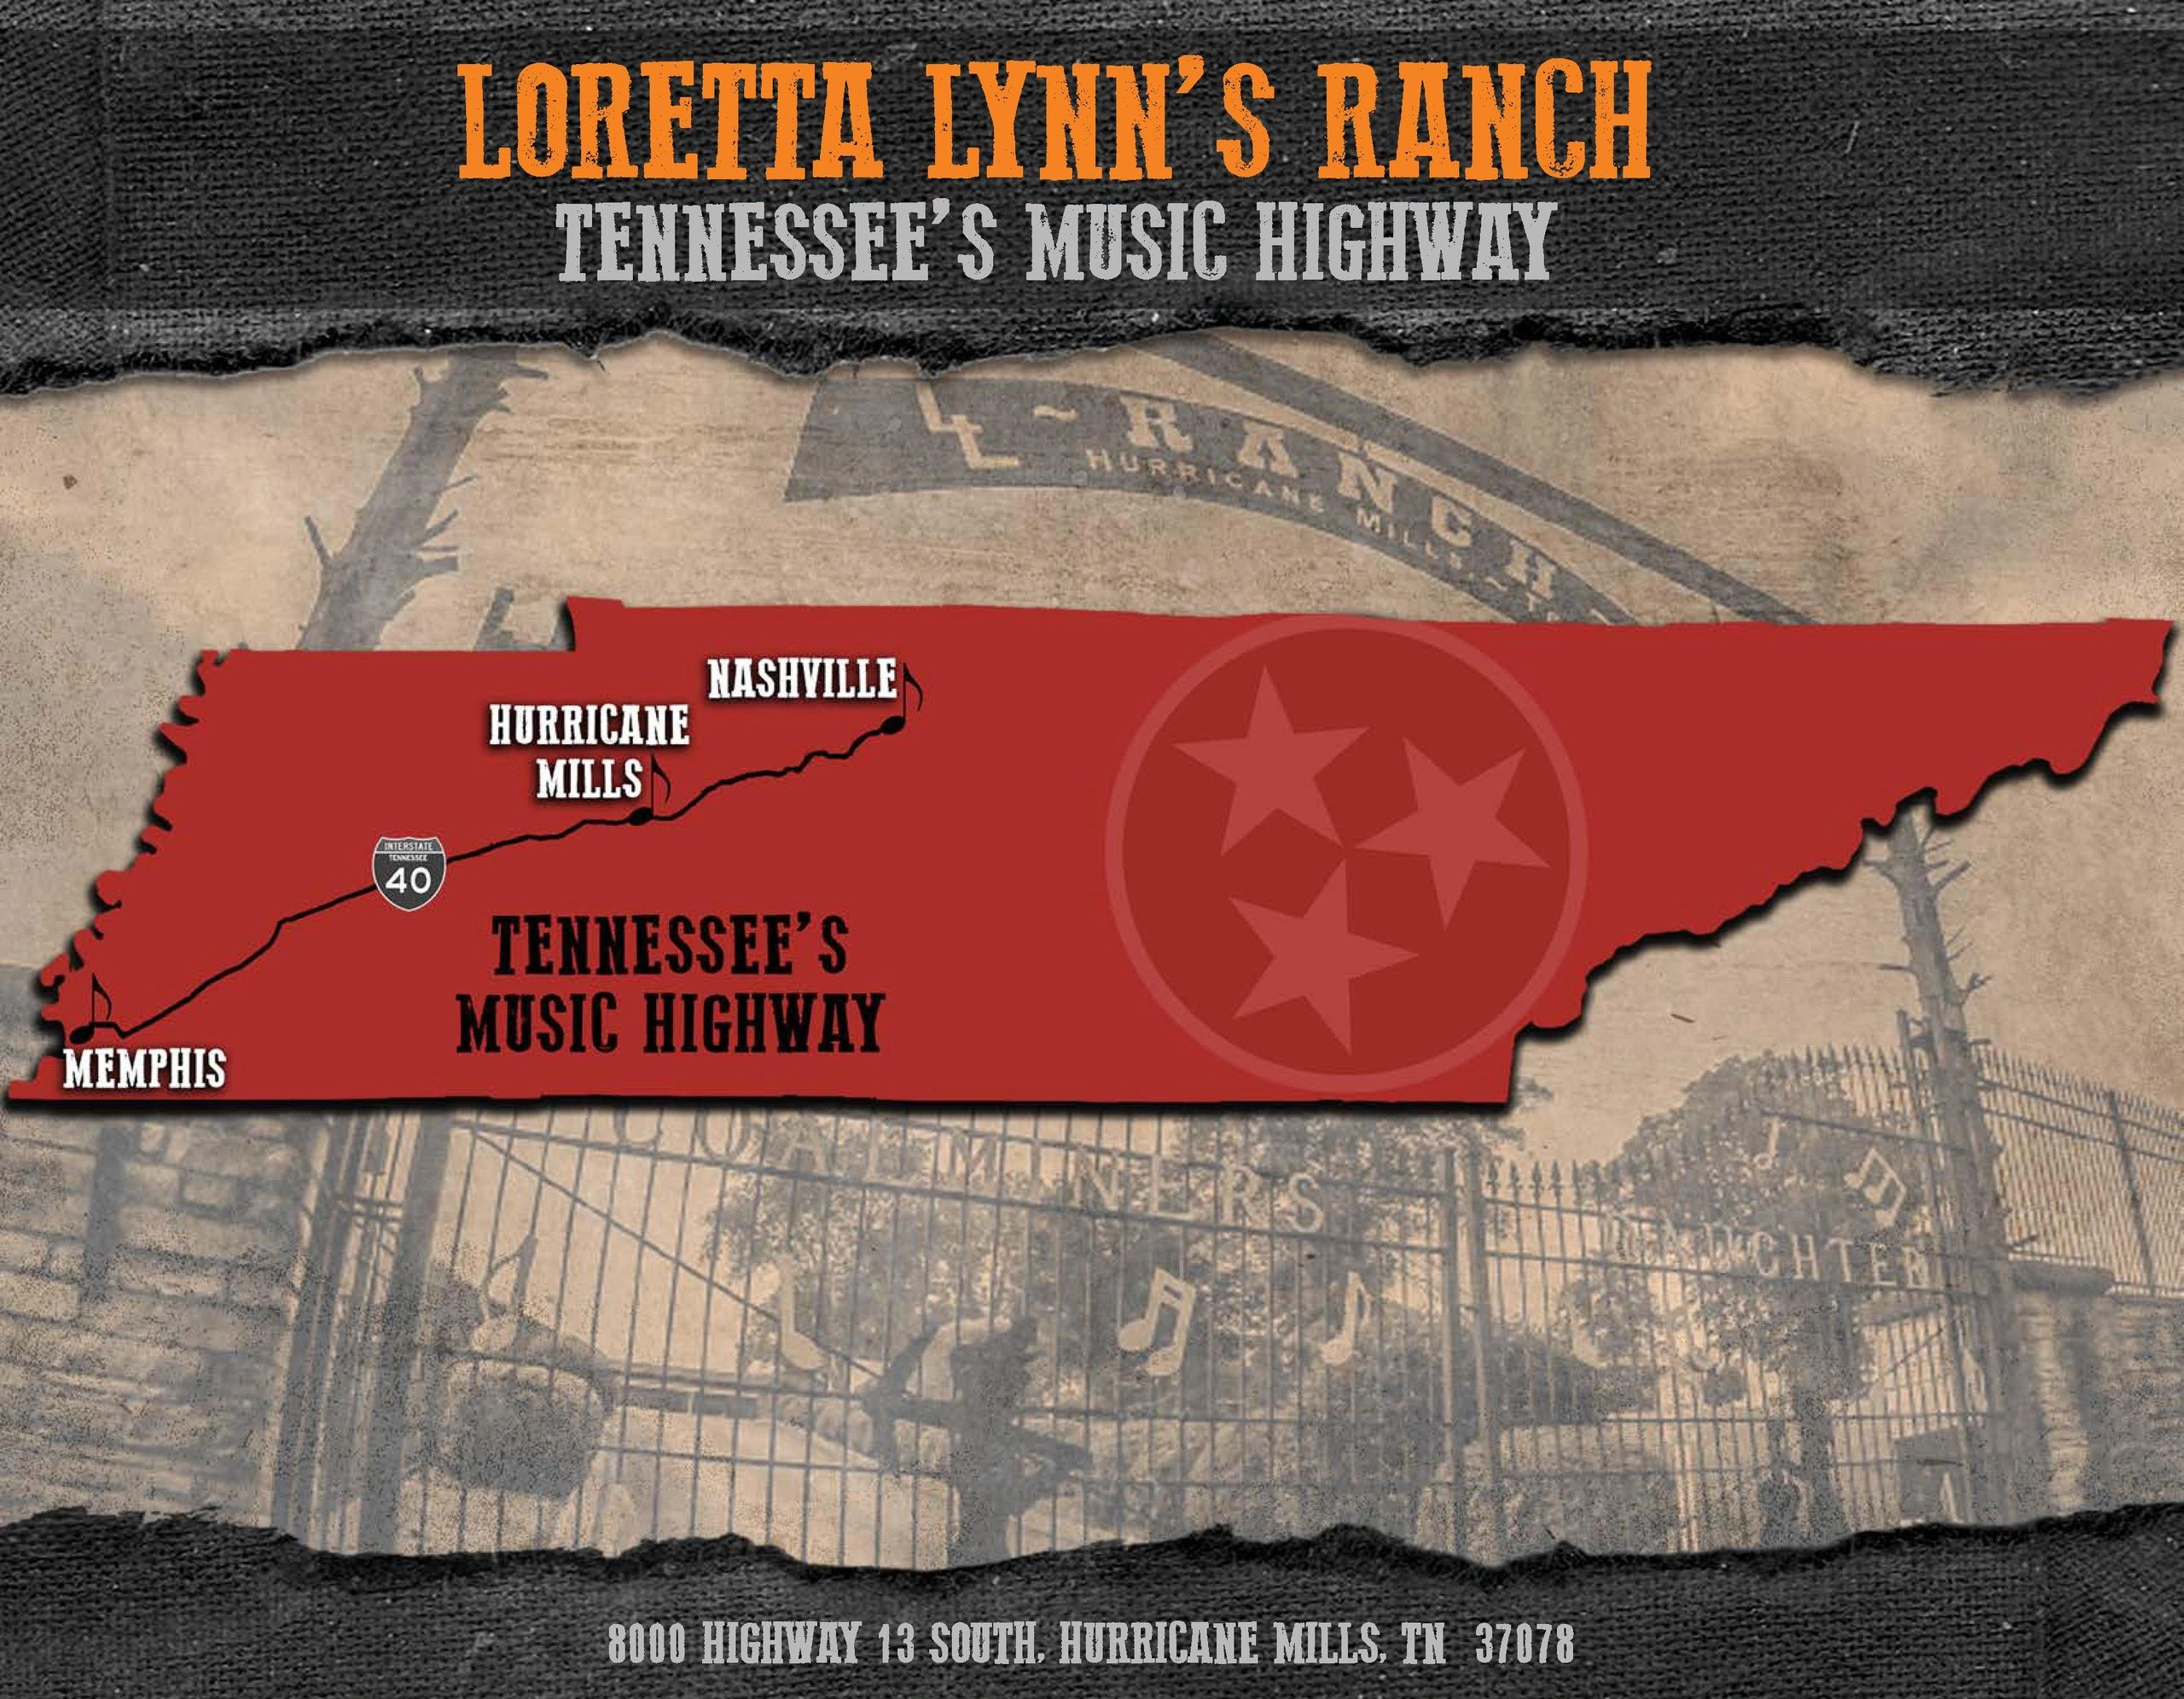 Tennessee's Music Highway, Loretta Lynn's Ranch is located between Memphis and Nashville